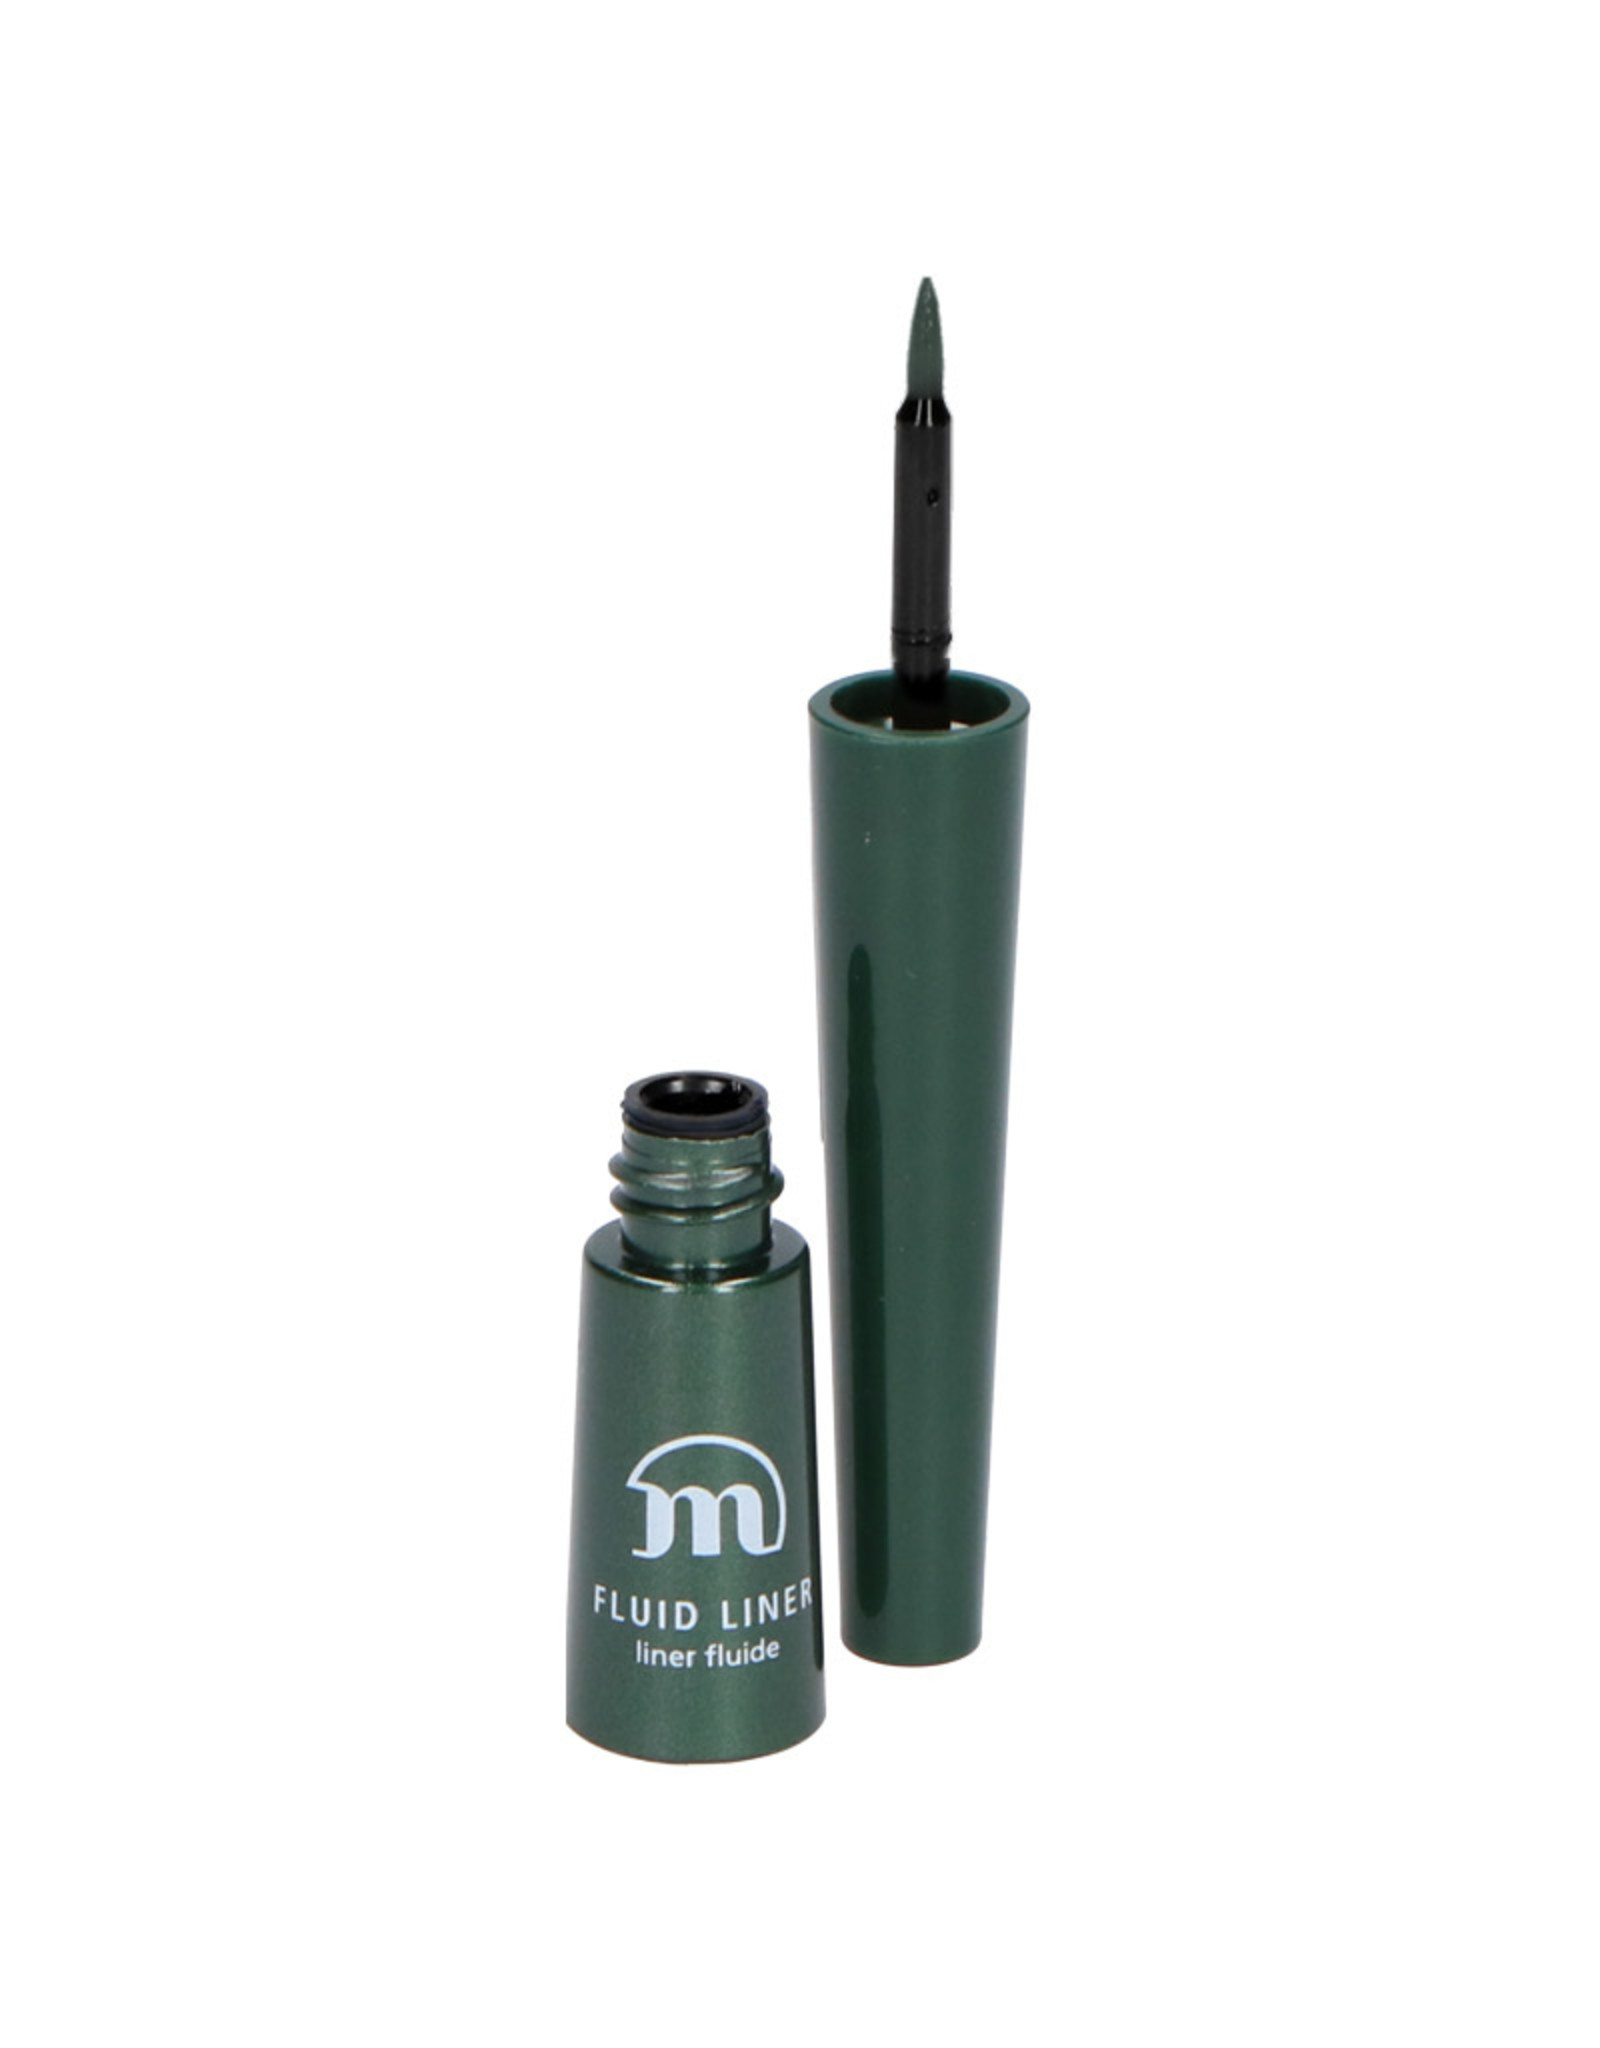 MAKE-UP STUDIO FLUID LINER SPARKLING GREEN